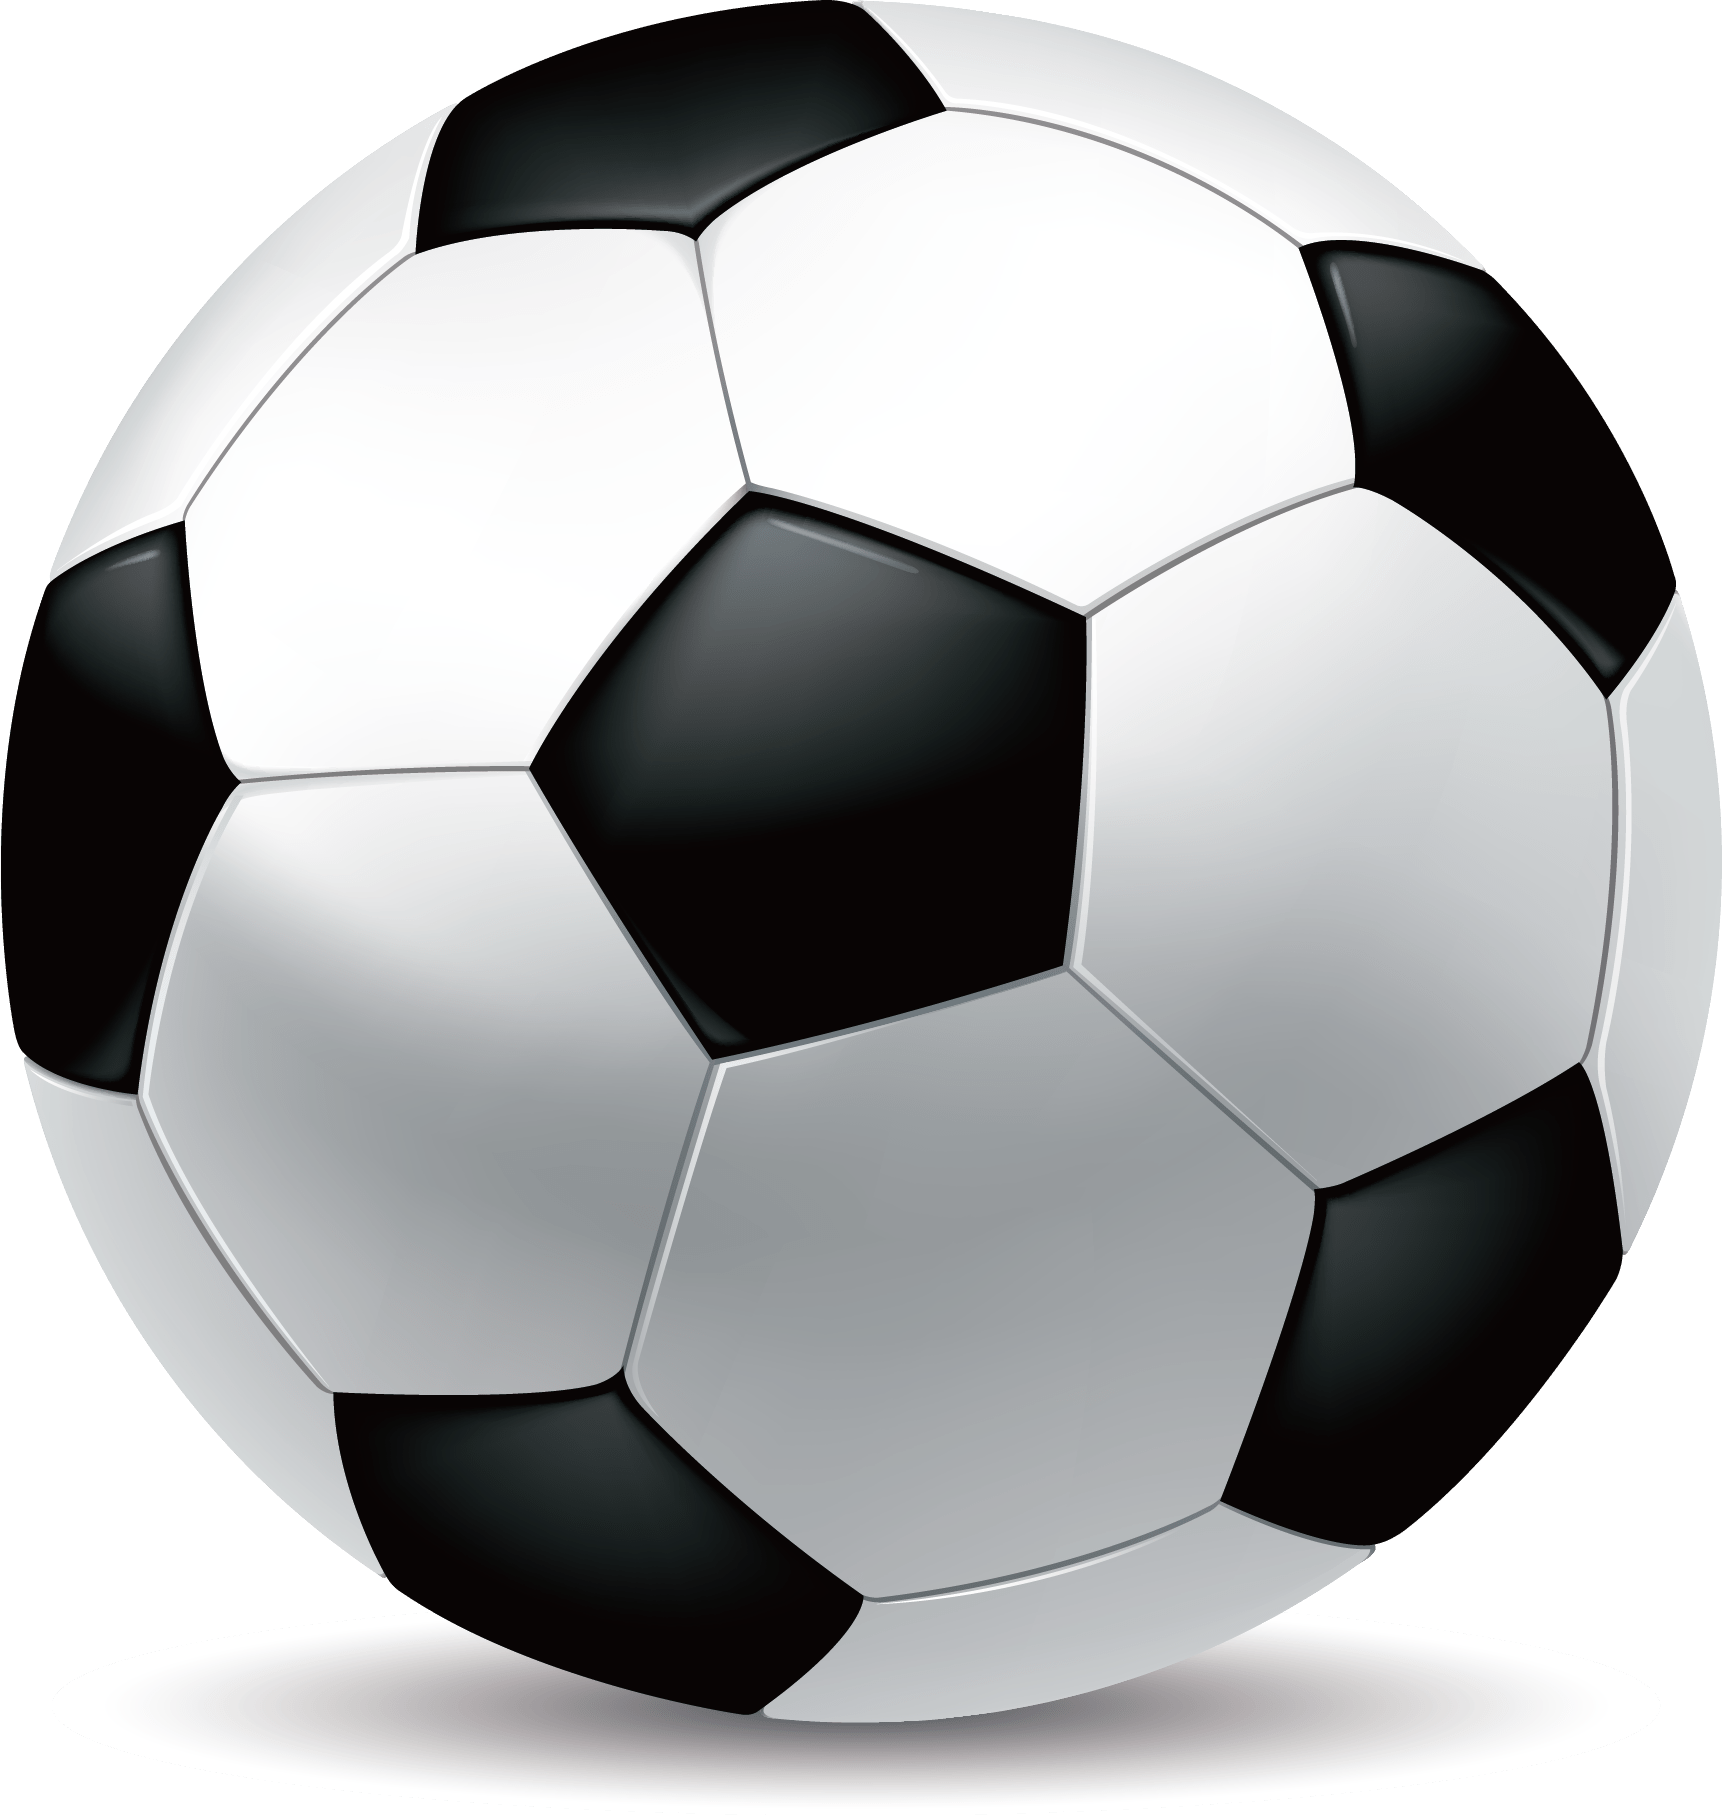 Download Player Football Team Free Download Image Clipart ... (1722 x 1815 Pixel)